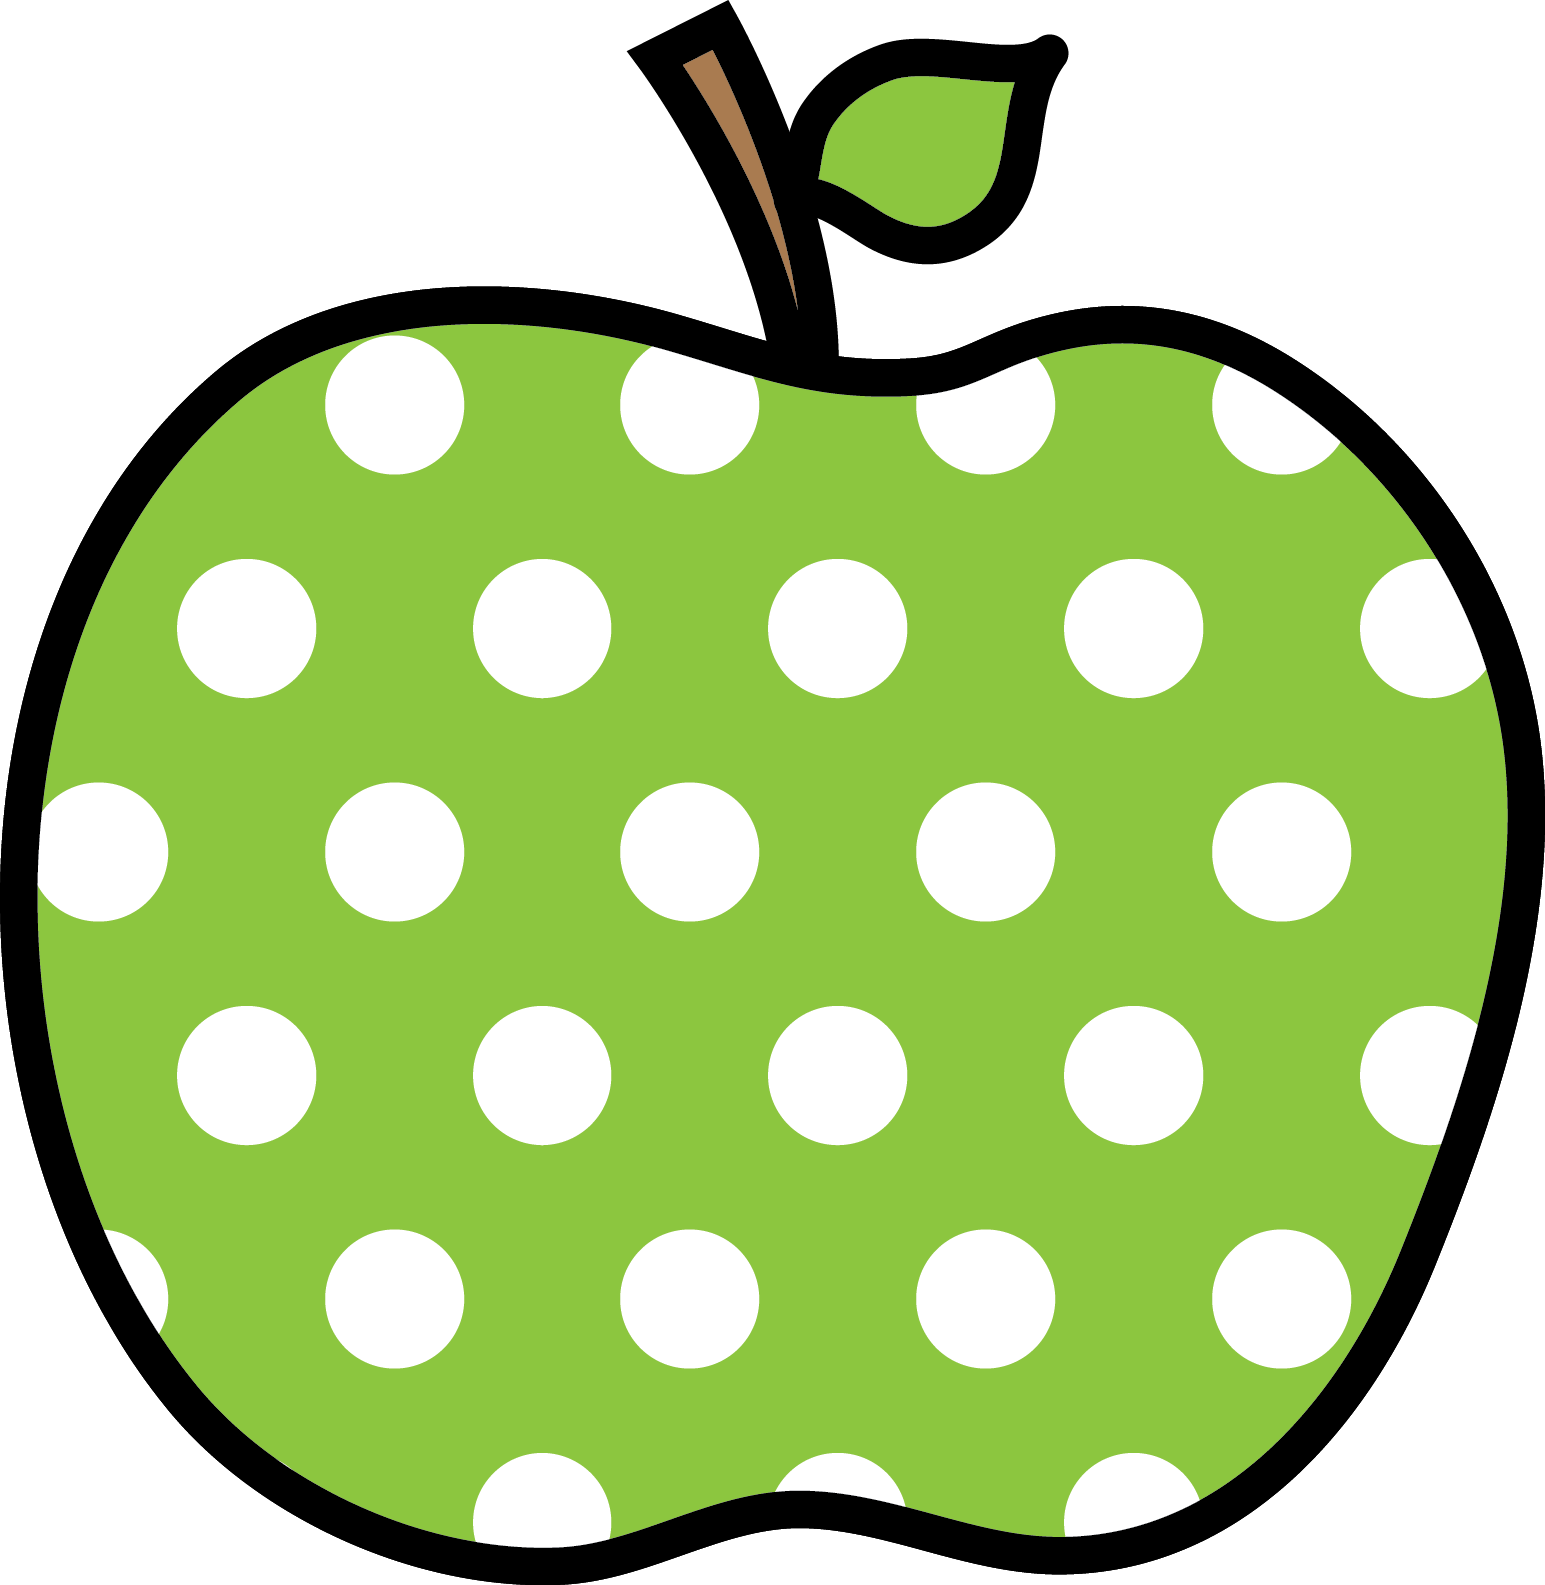 Chevron split apple clipart clipart transparent stock ✿*UY..QUE TE COMO*✿* | Manzanas | Pinterest | Apples, Clip art and ... clipart transparent stock